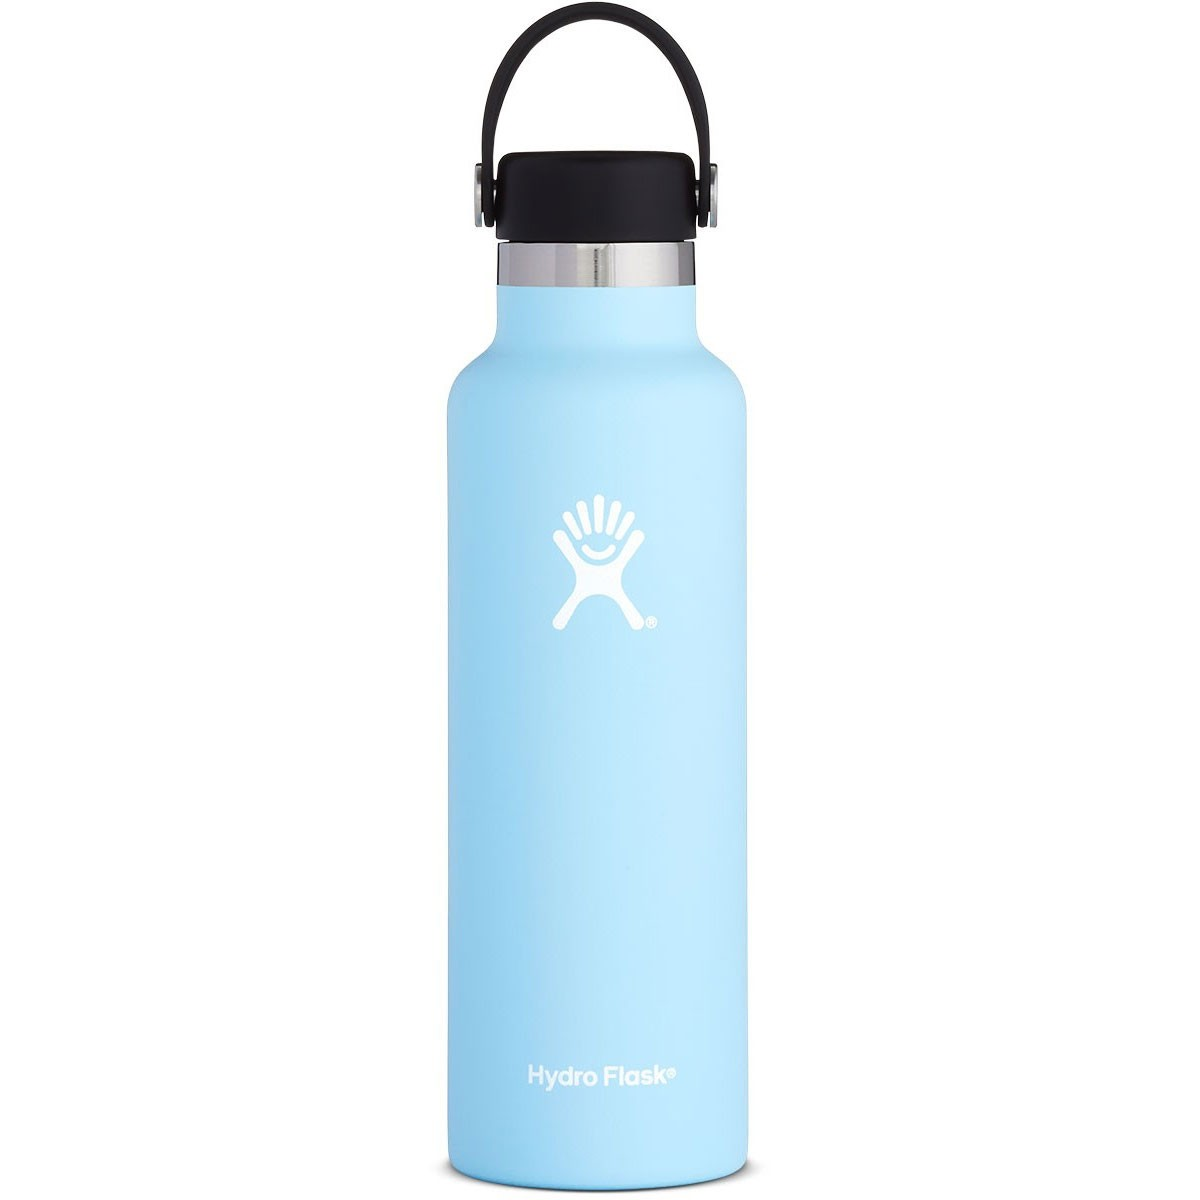 HYDRO FLASK - 21oz Insulated Bottle - Frost